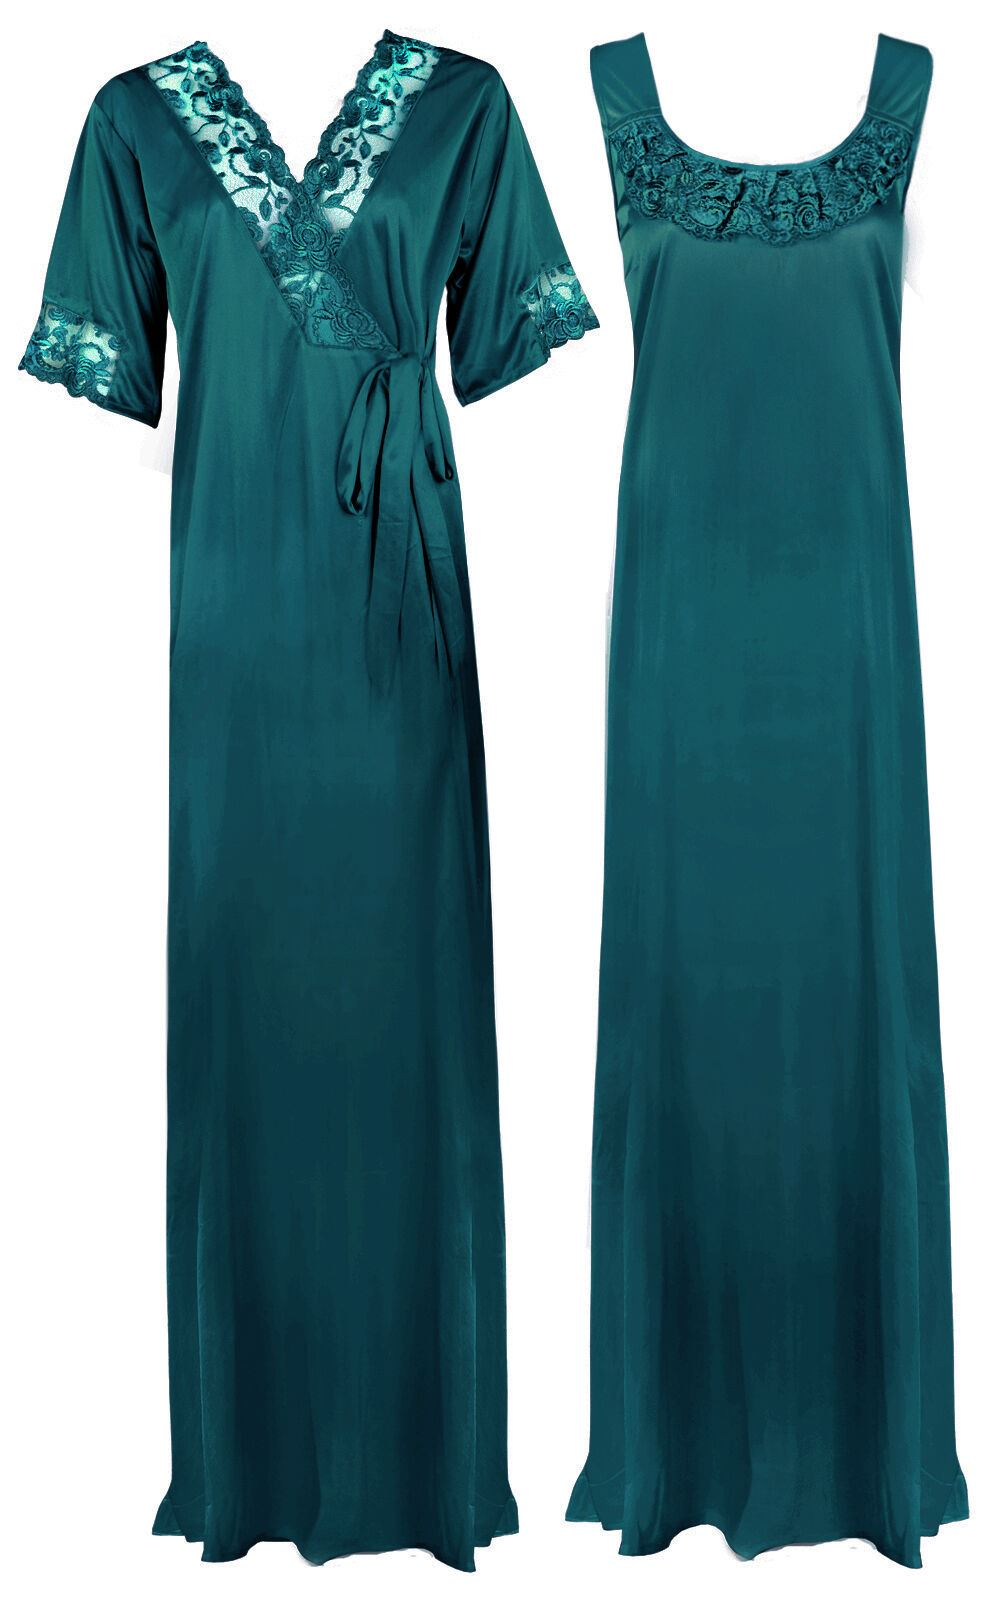 Women Plus Size 2 Pcs Satin Nightdress - XL. 2XL TEAL Hautie Nightfashion